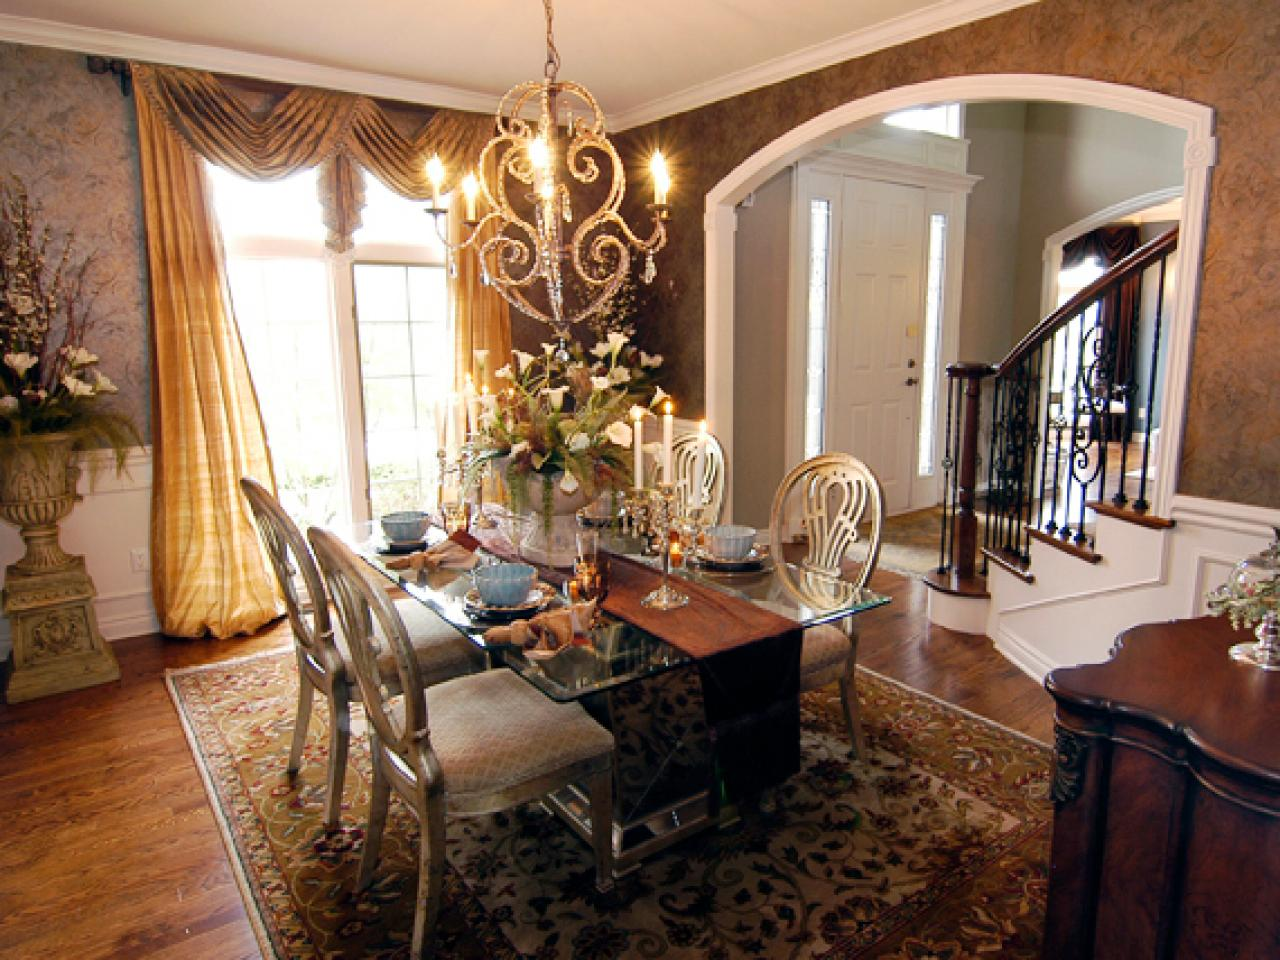 Budget friendly dining room updates from expert designers for Dining room design ideas